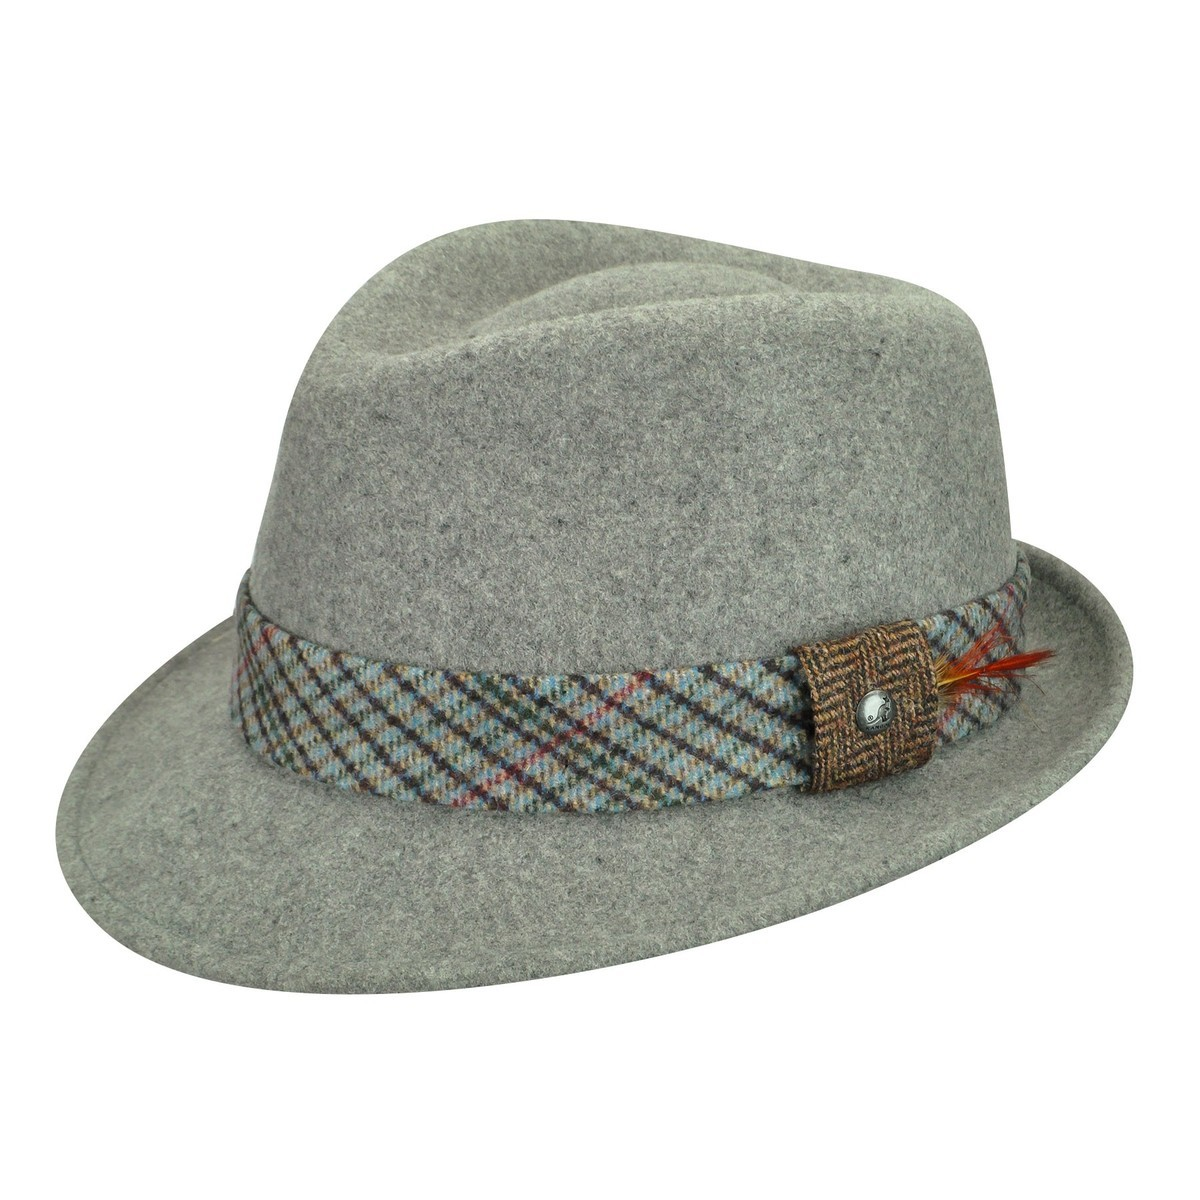 Kangol メンズ帽子 Kangol Estate Arnold Fedora Flannel